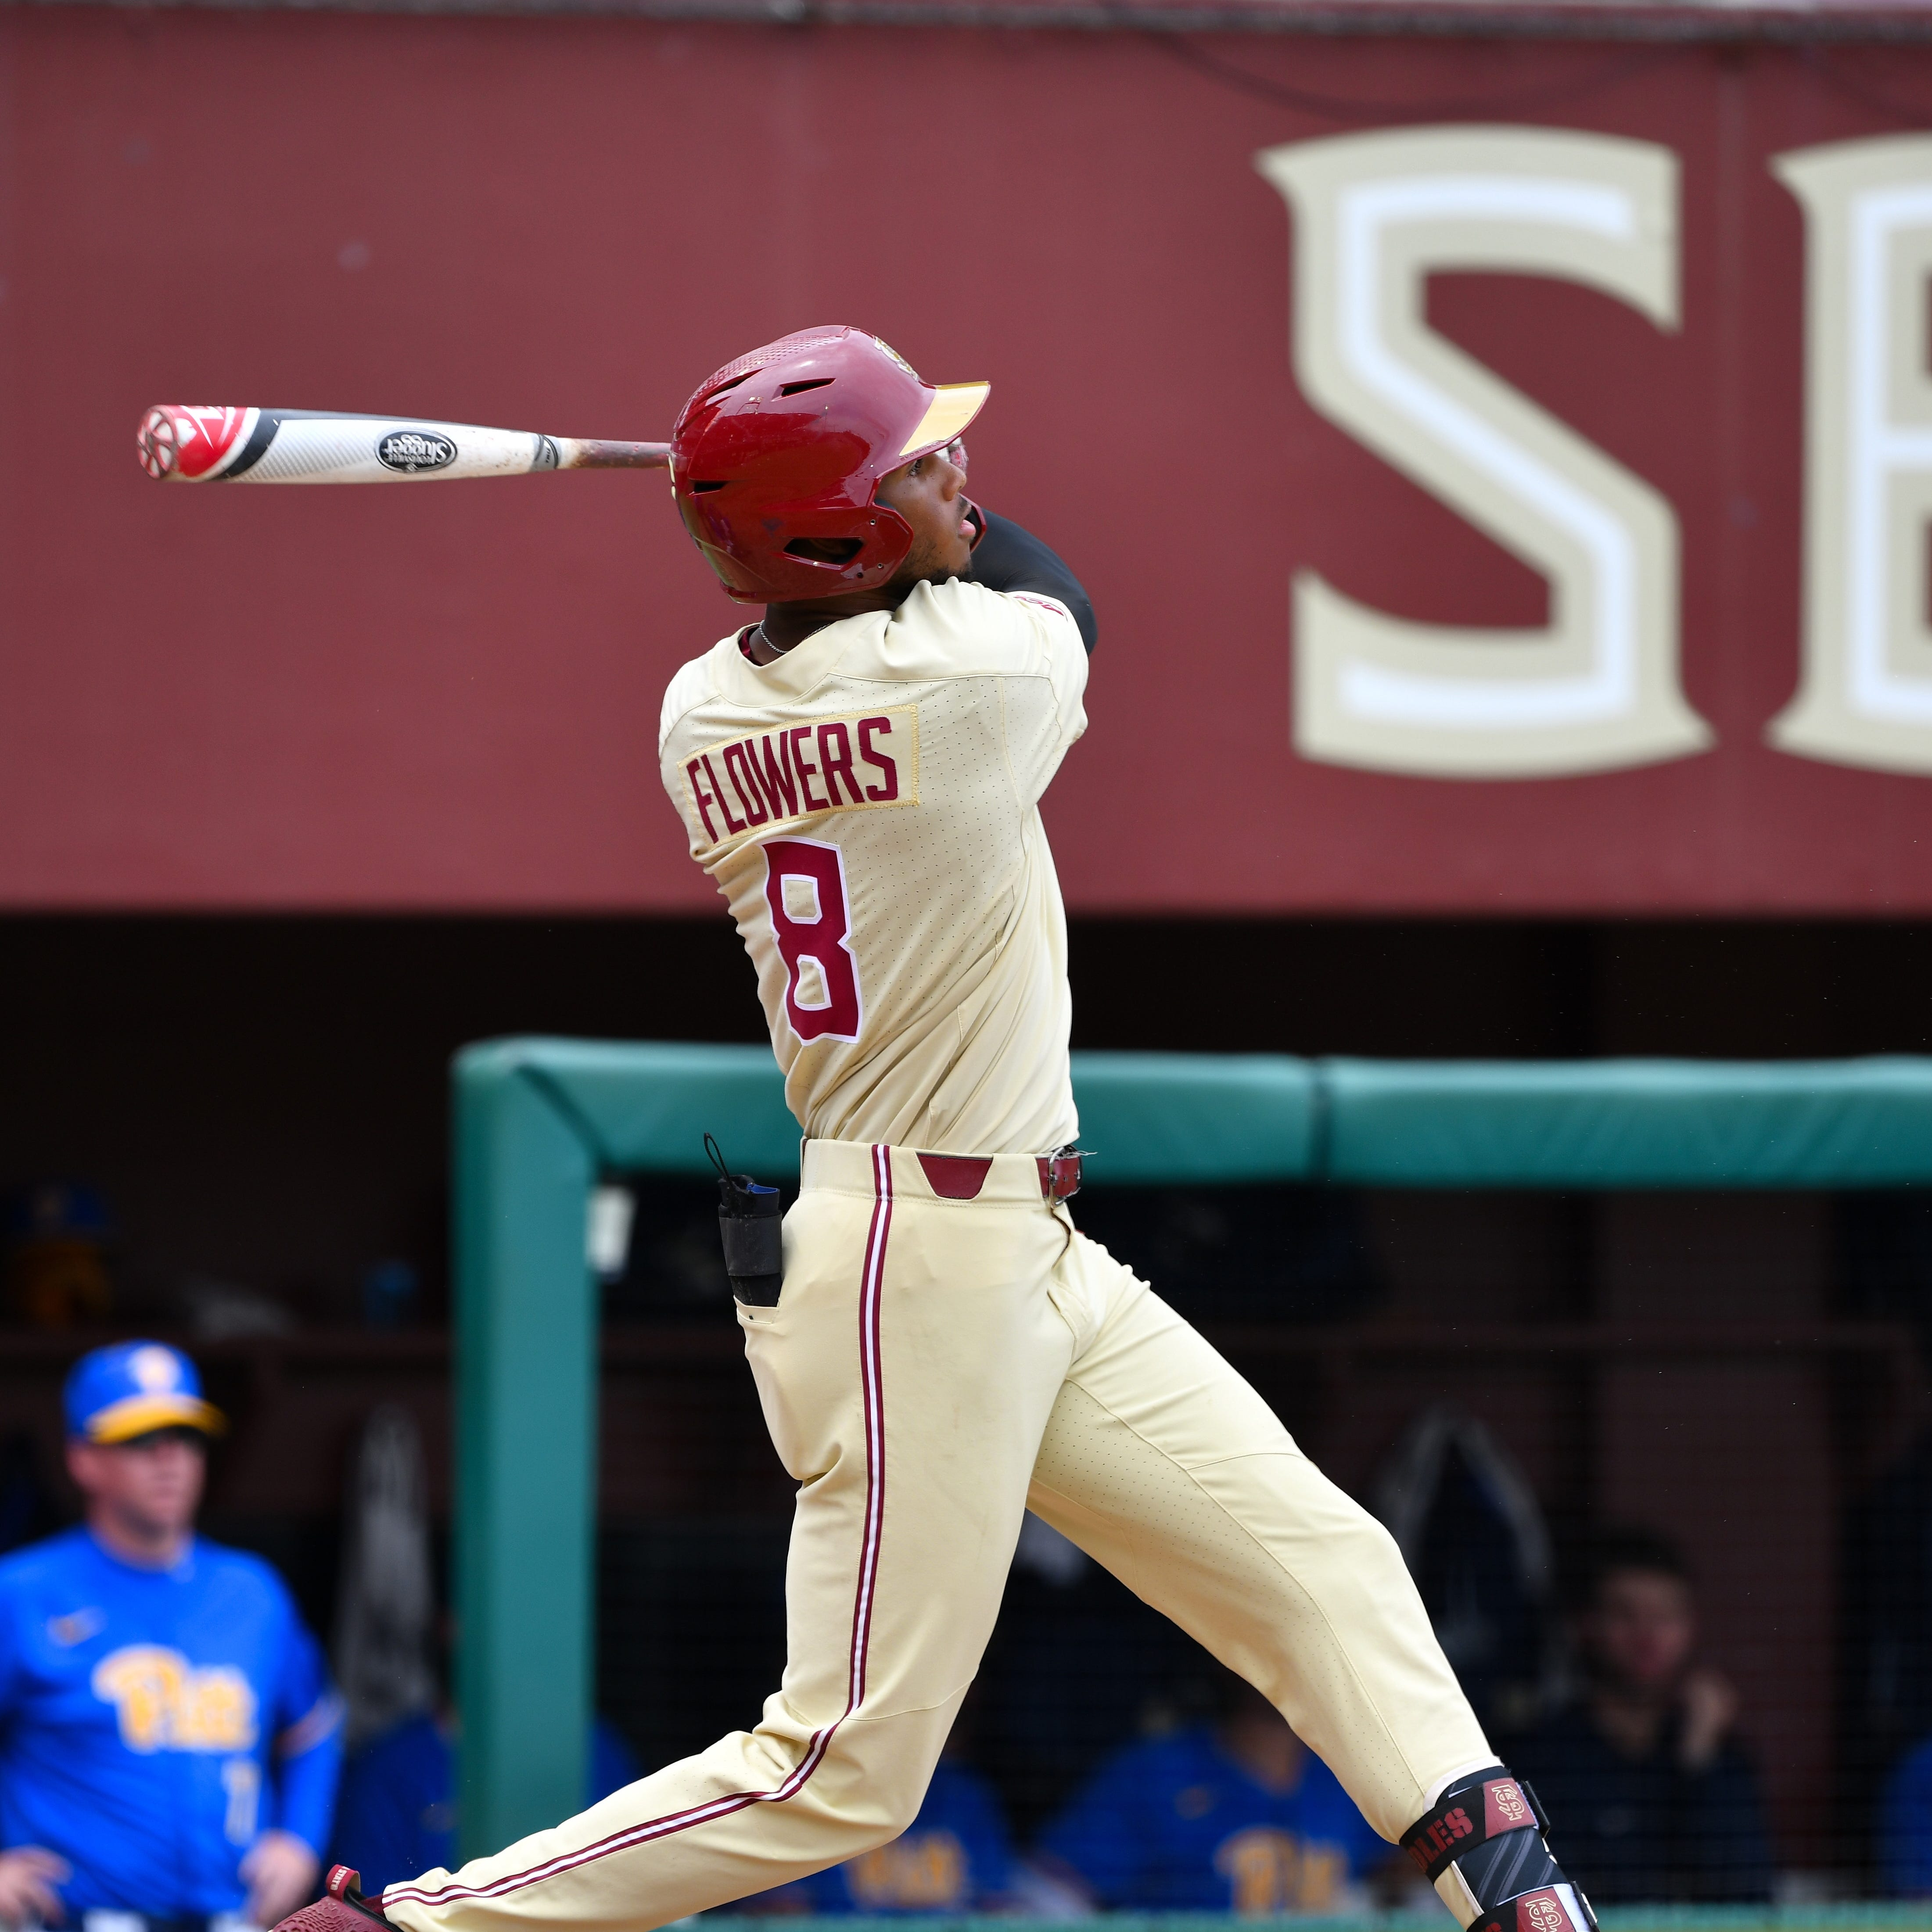 J.C. Flowers continues power surge as Florida State sweeps doubleheader over Pitt